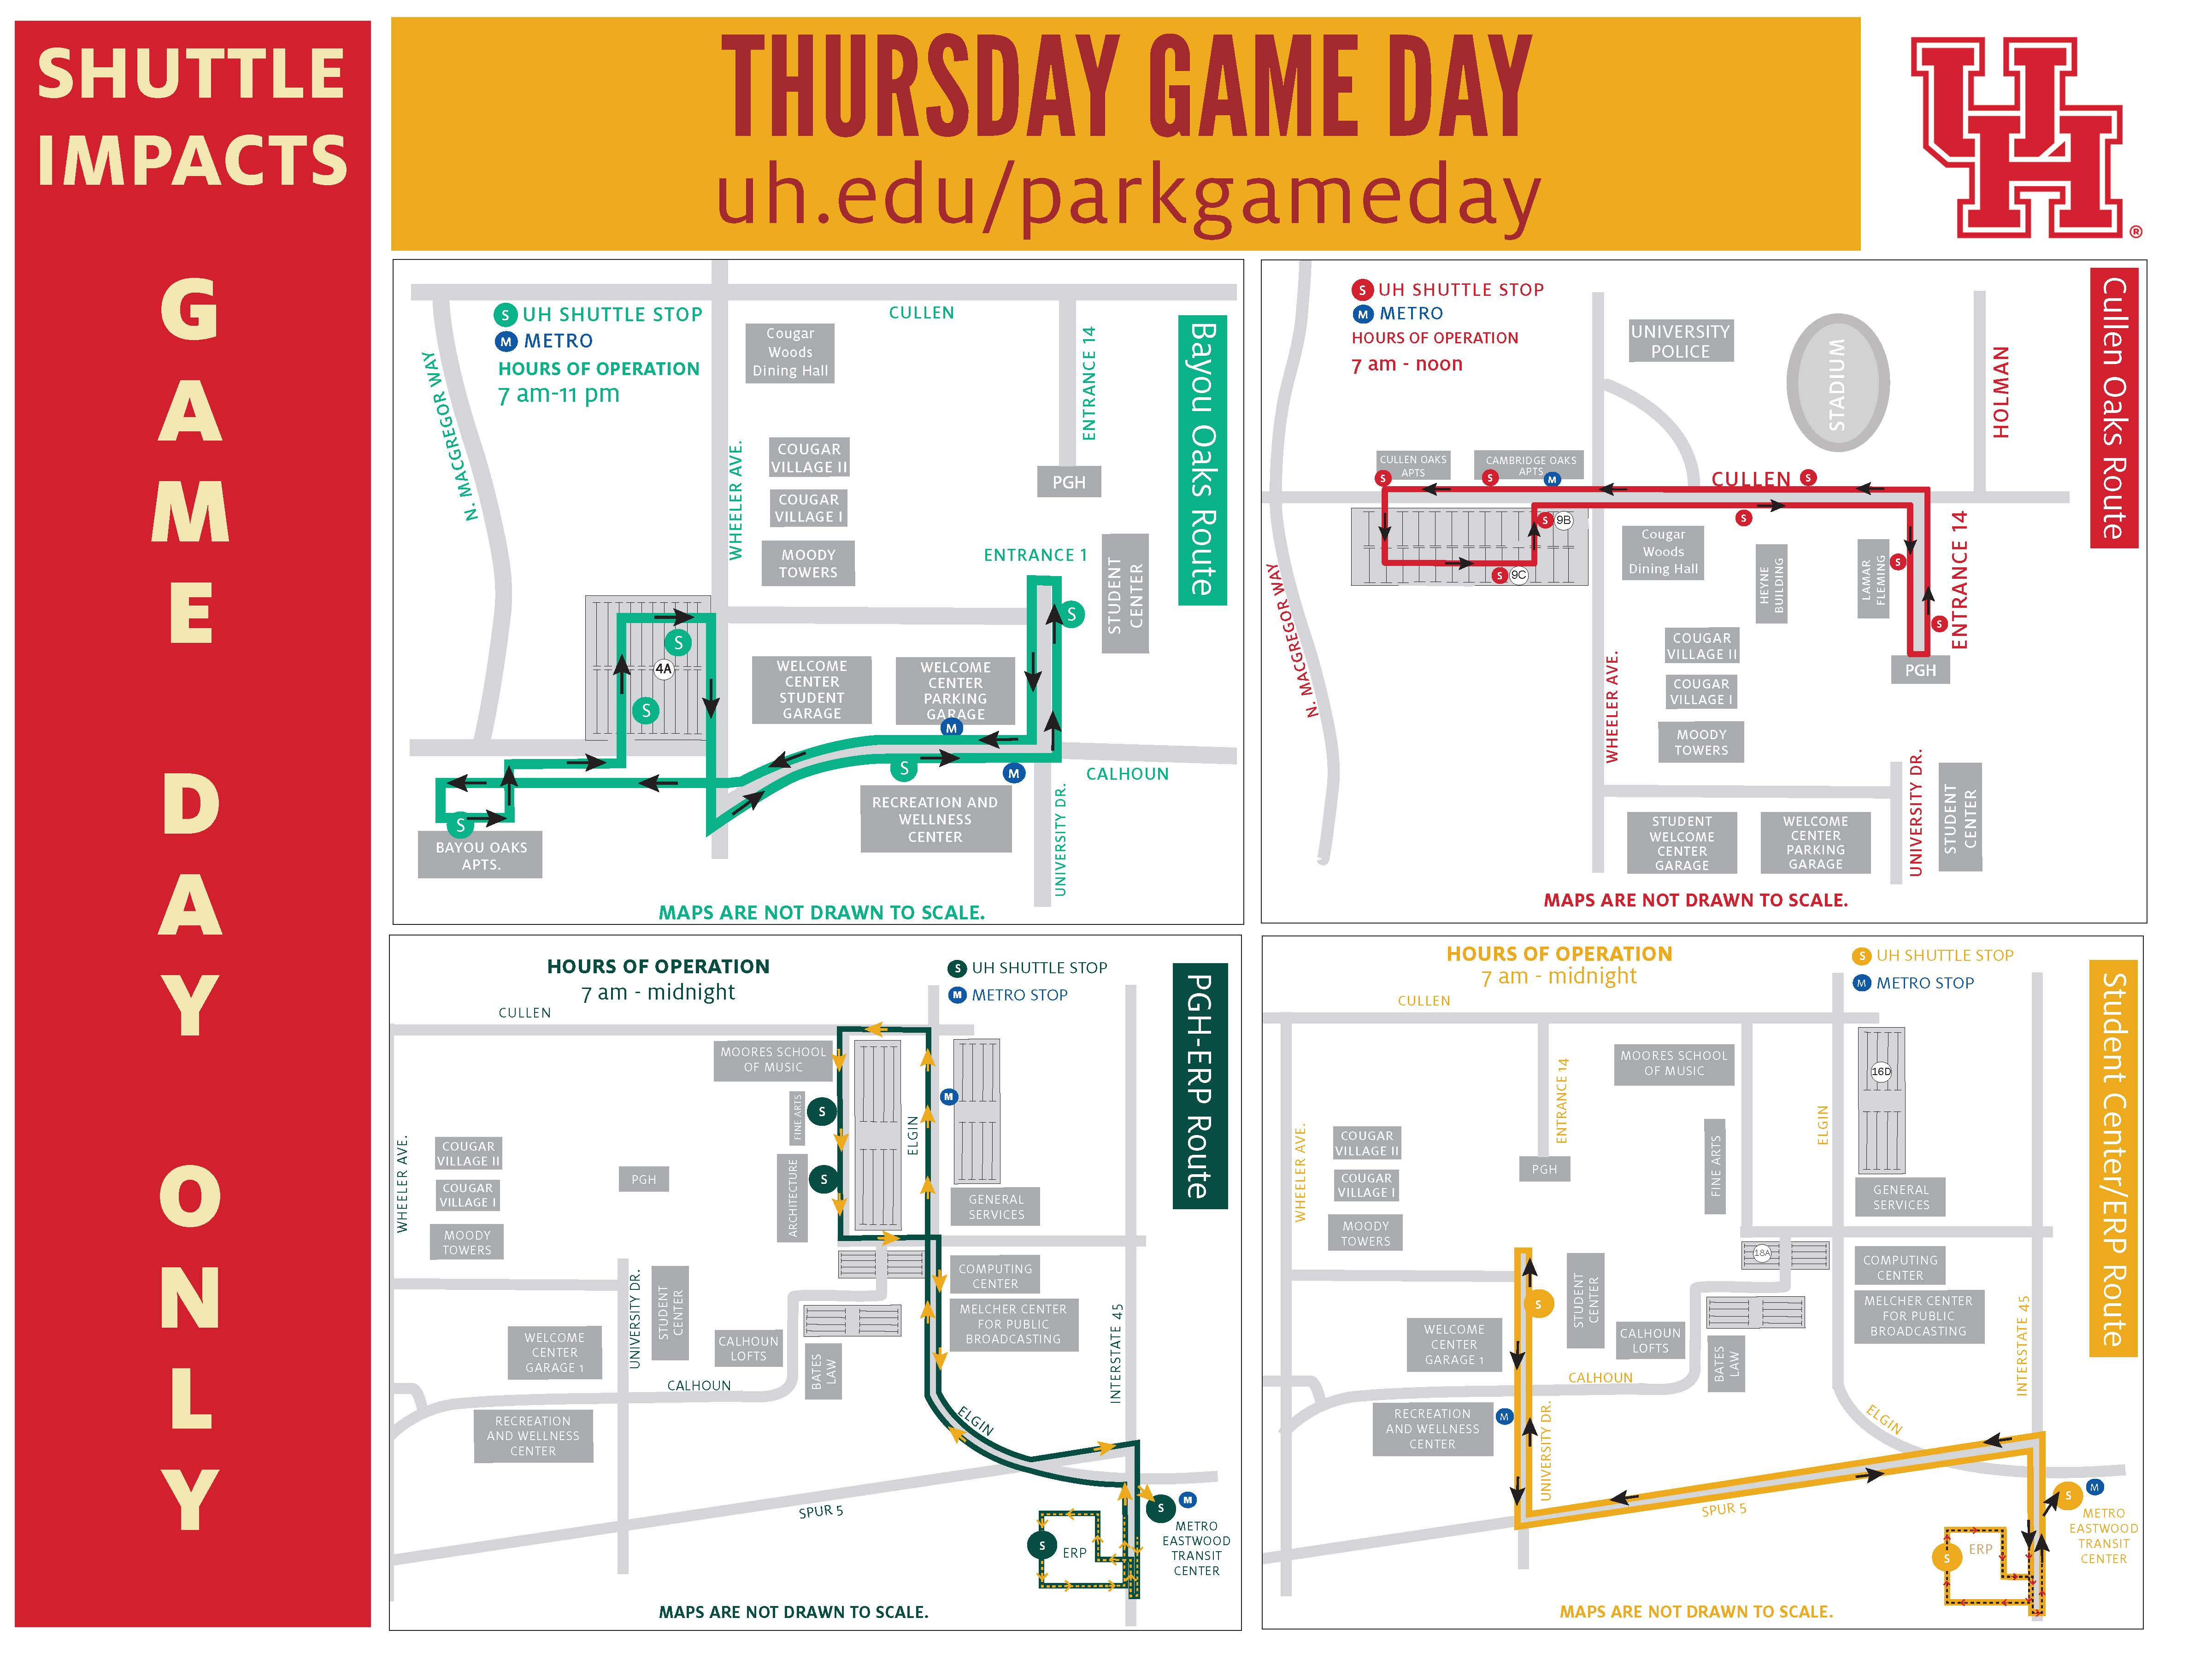 Campus Parking on Game Day - University of Houston